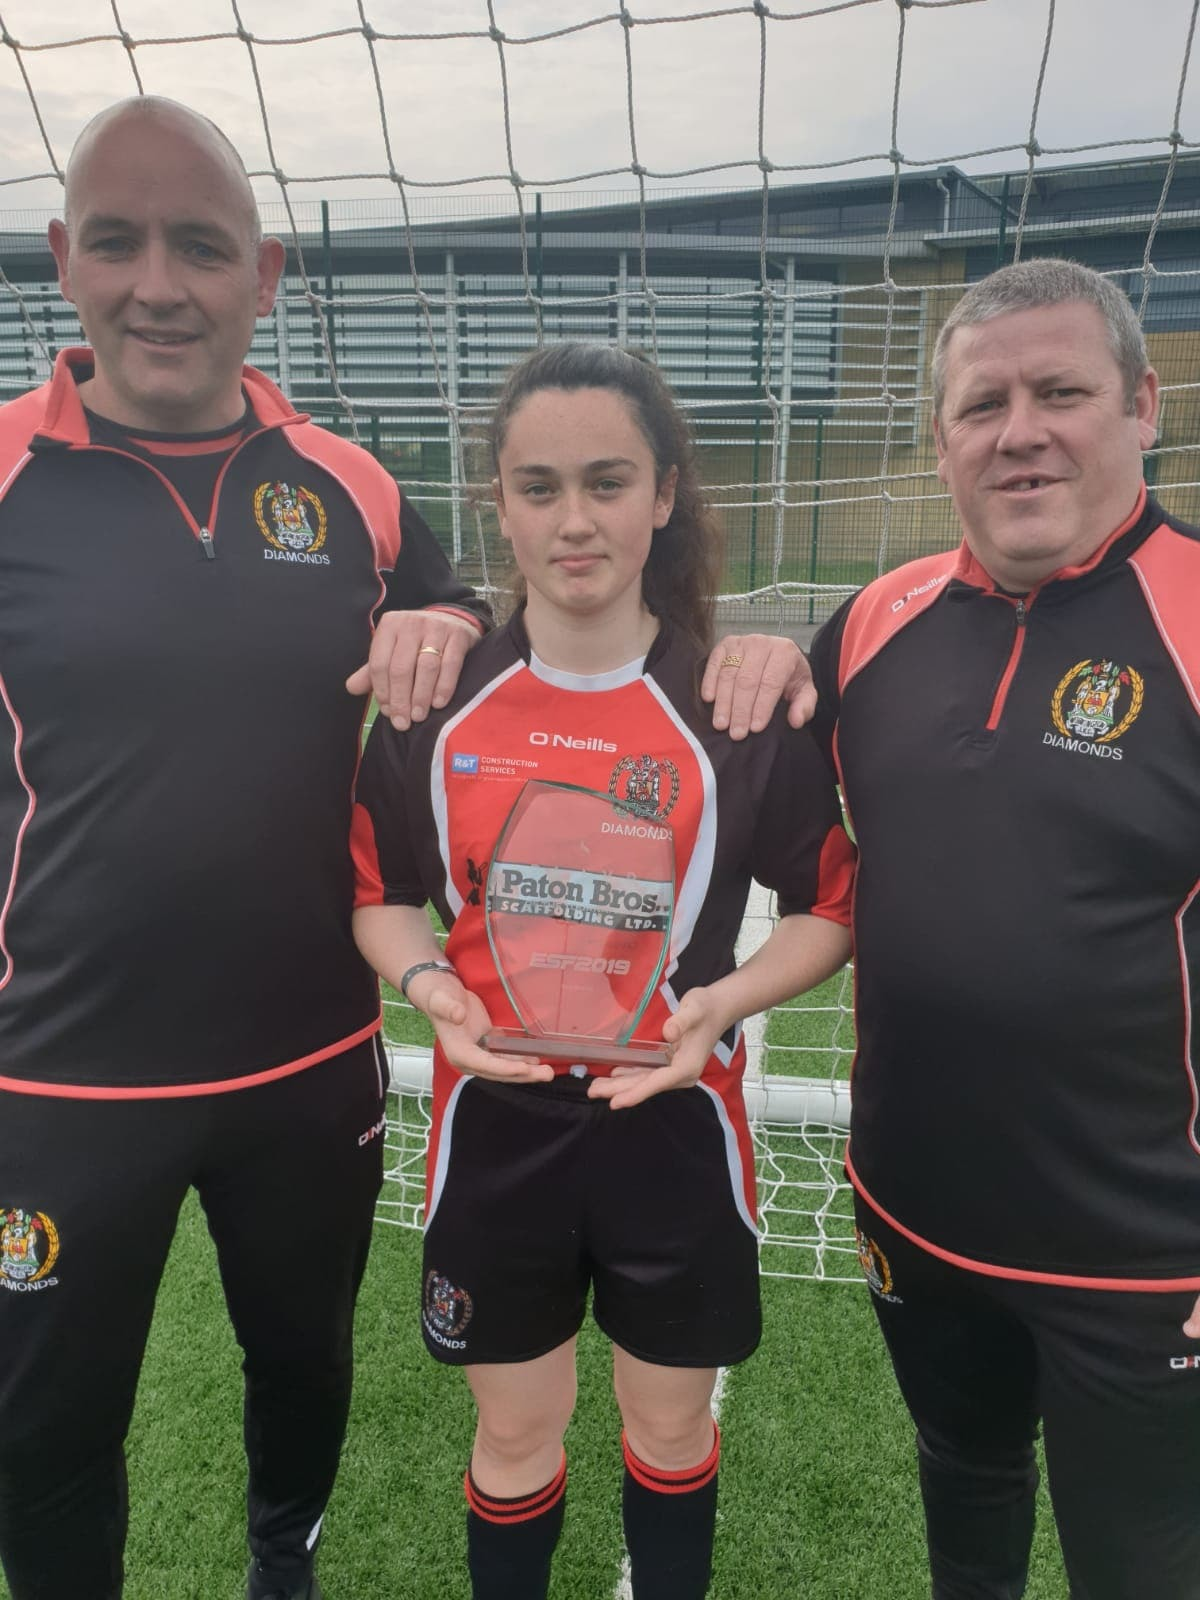 Millie Crellin with her award and Workington Diamonds coaches